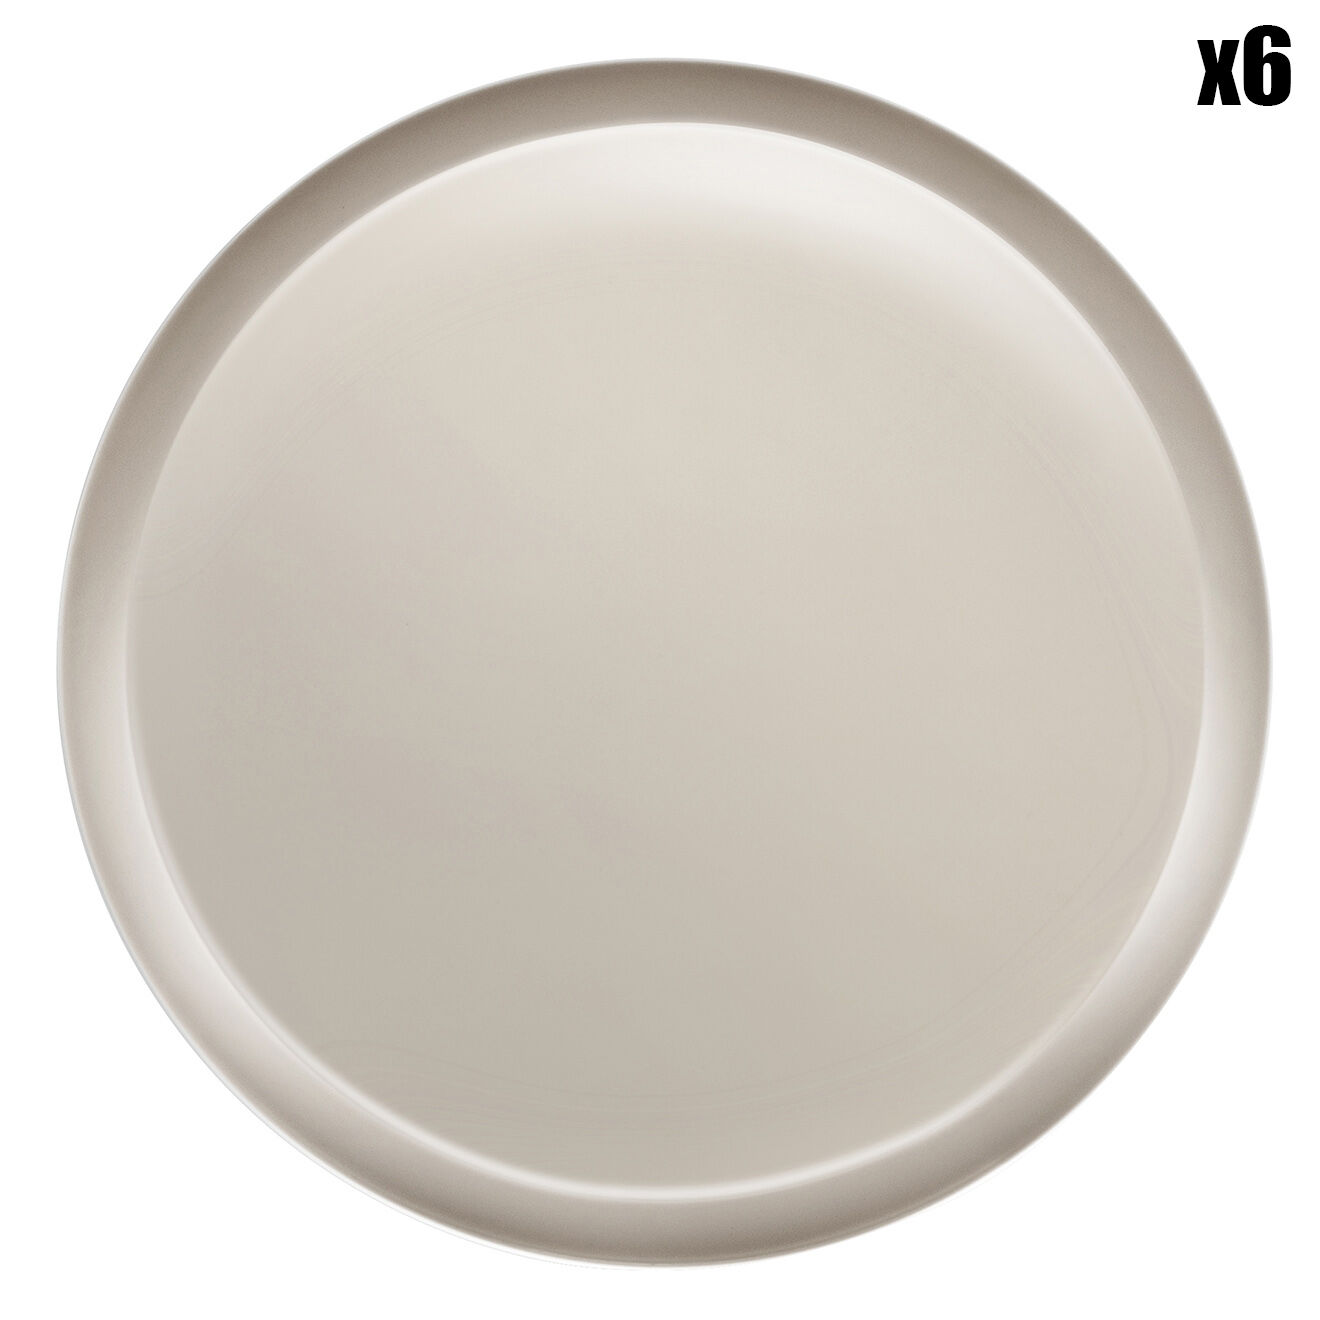 6 Assiettes plates Nomade Taupe